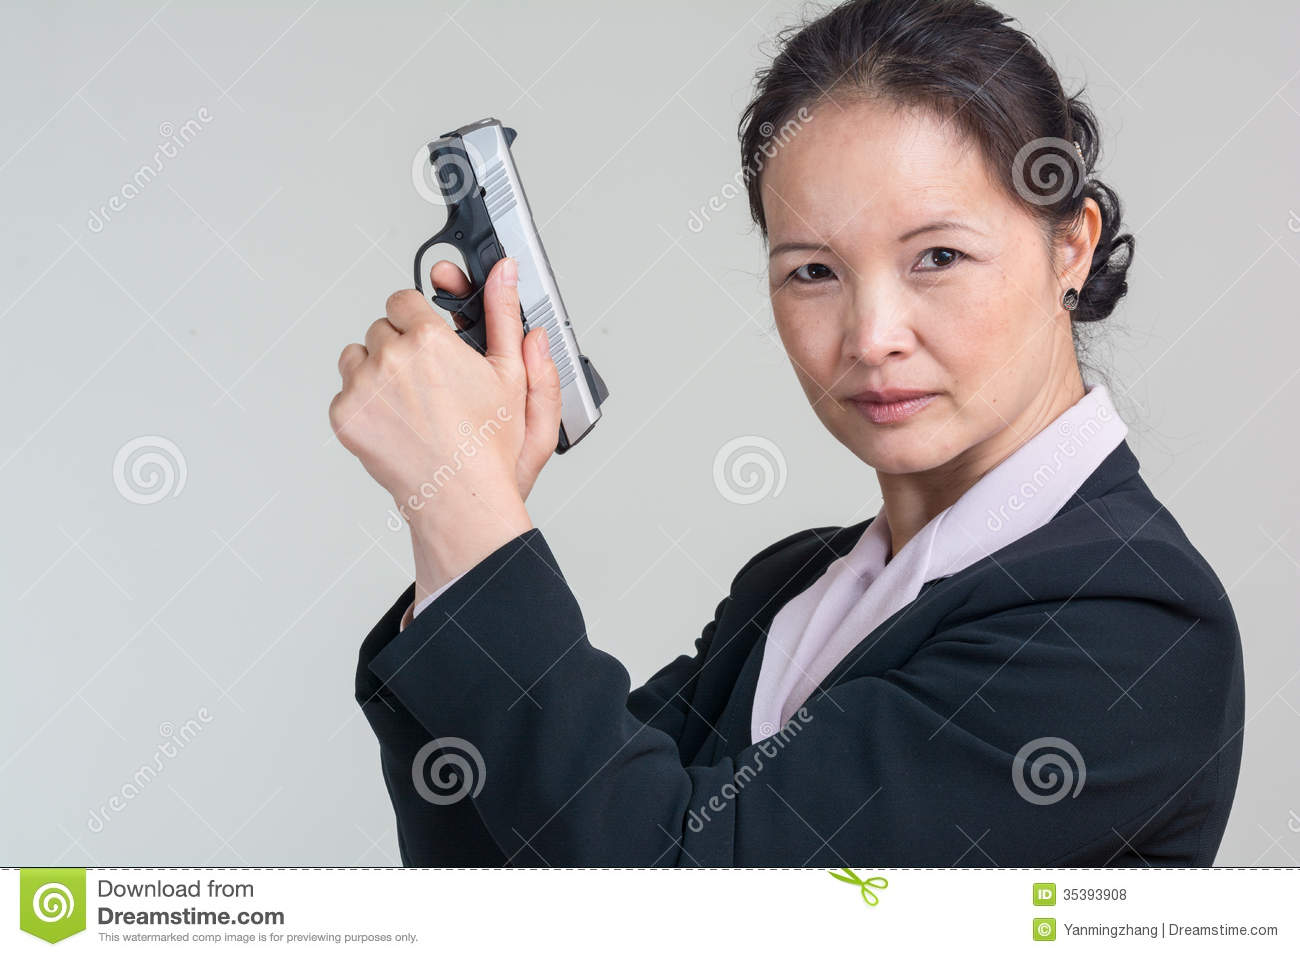 Woman Holding A Hand Gun Royalty Free Stock Photos - Image ...